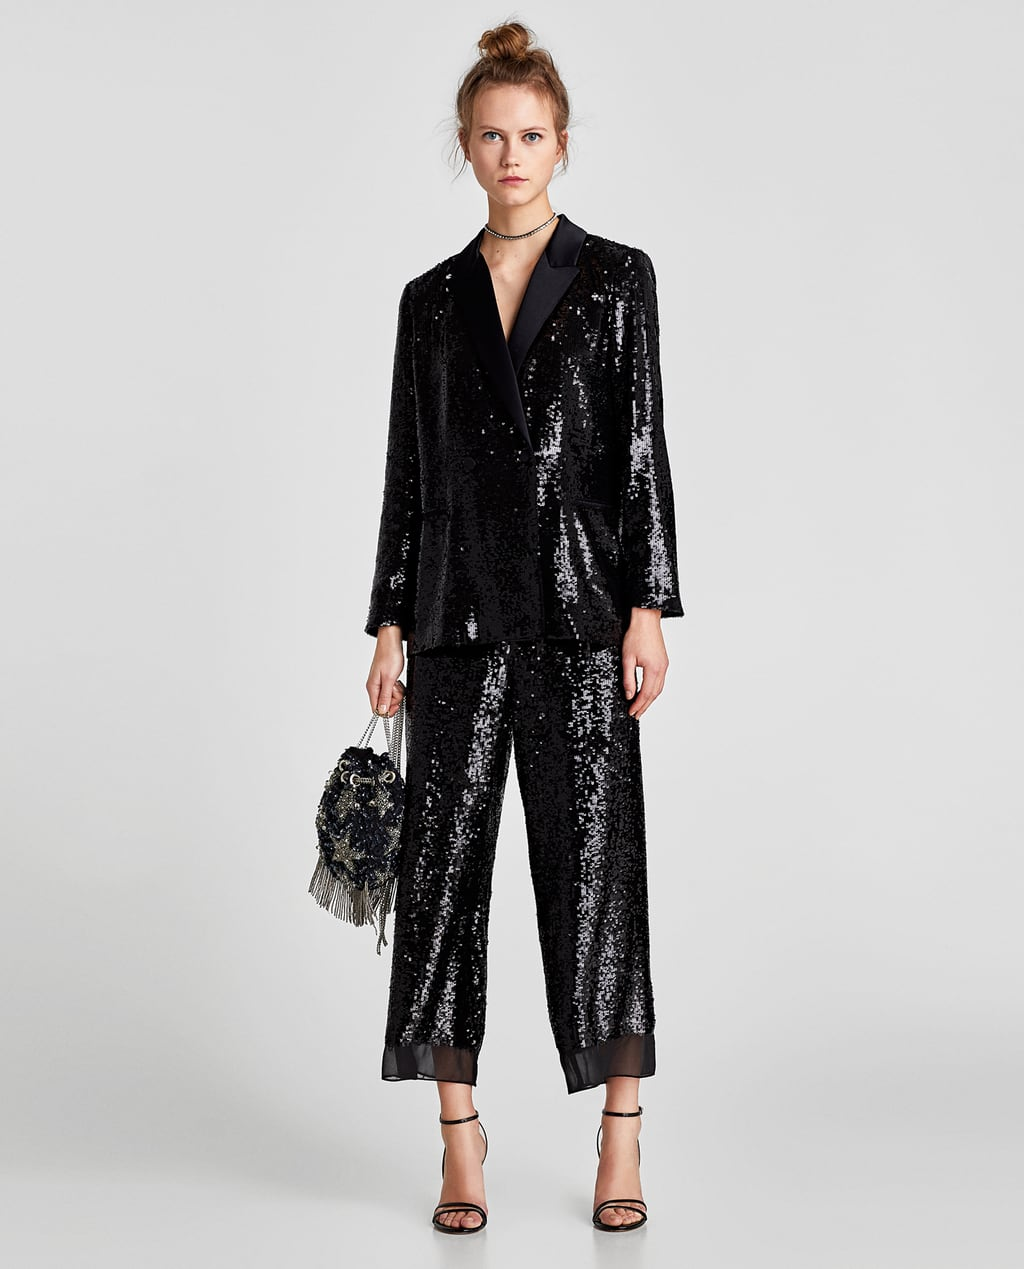 ZARA SEQUINNED DOUBLE-BREASTED BLAZER